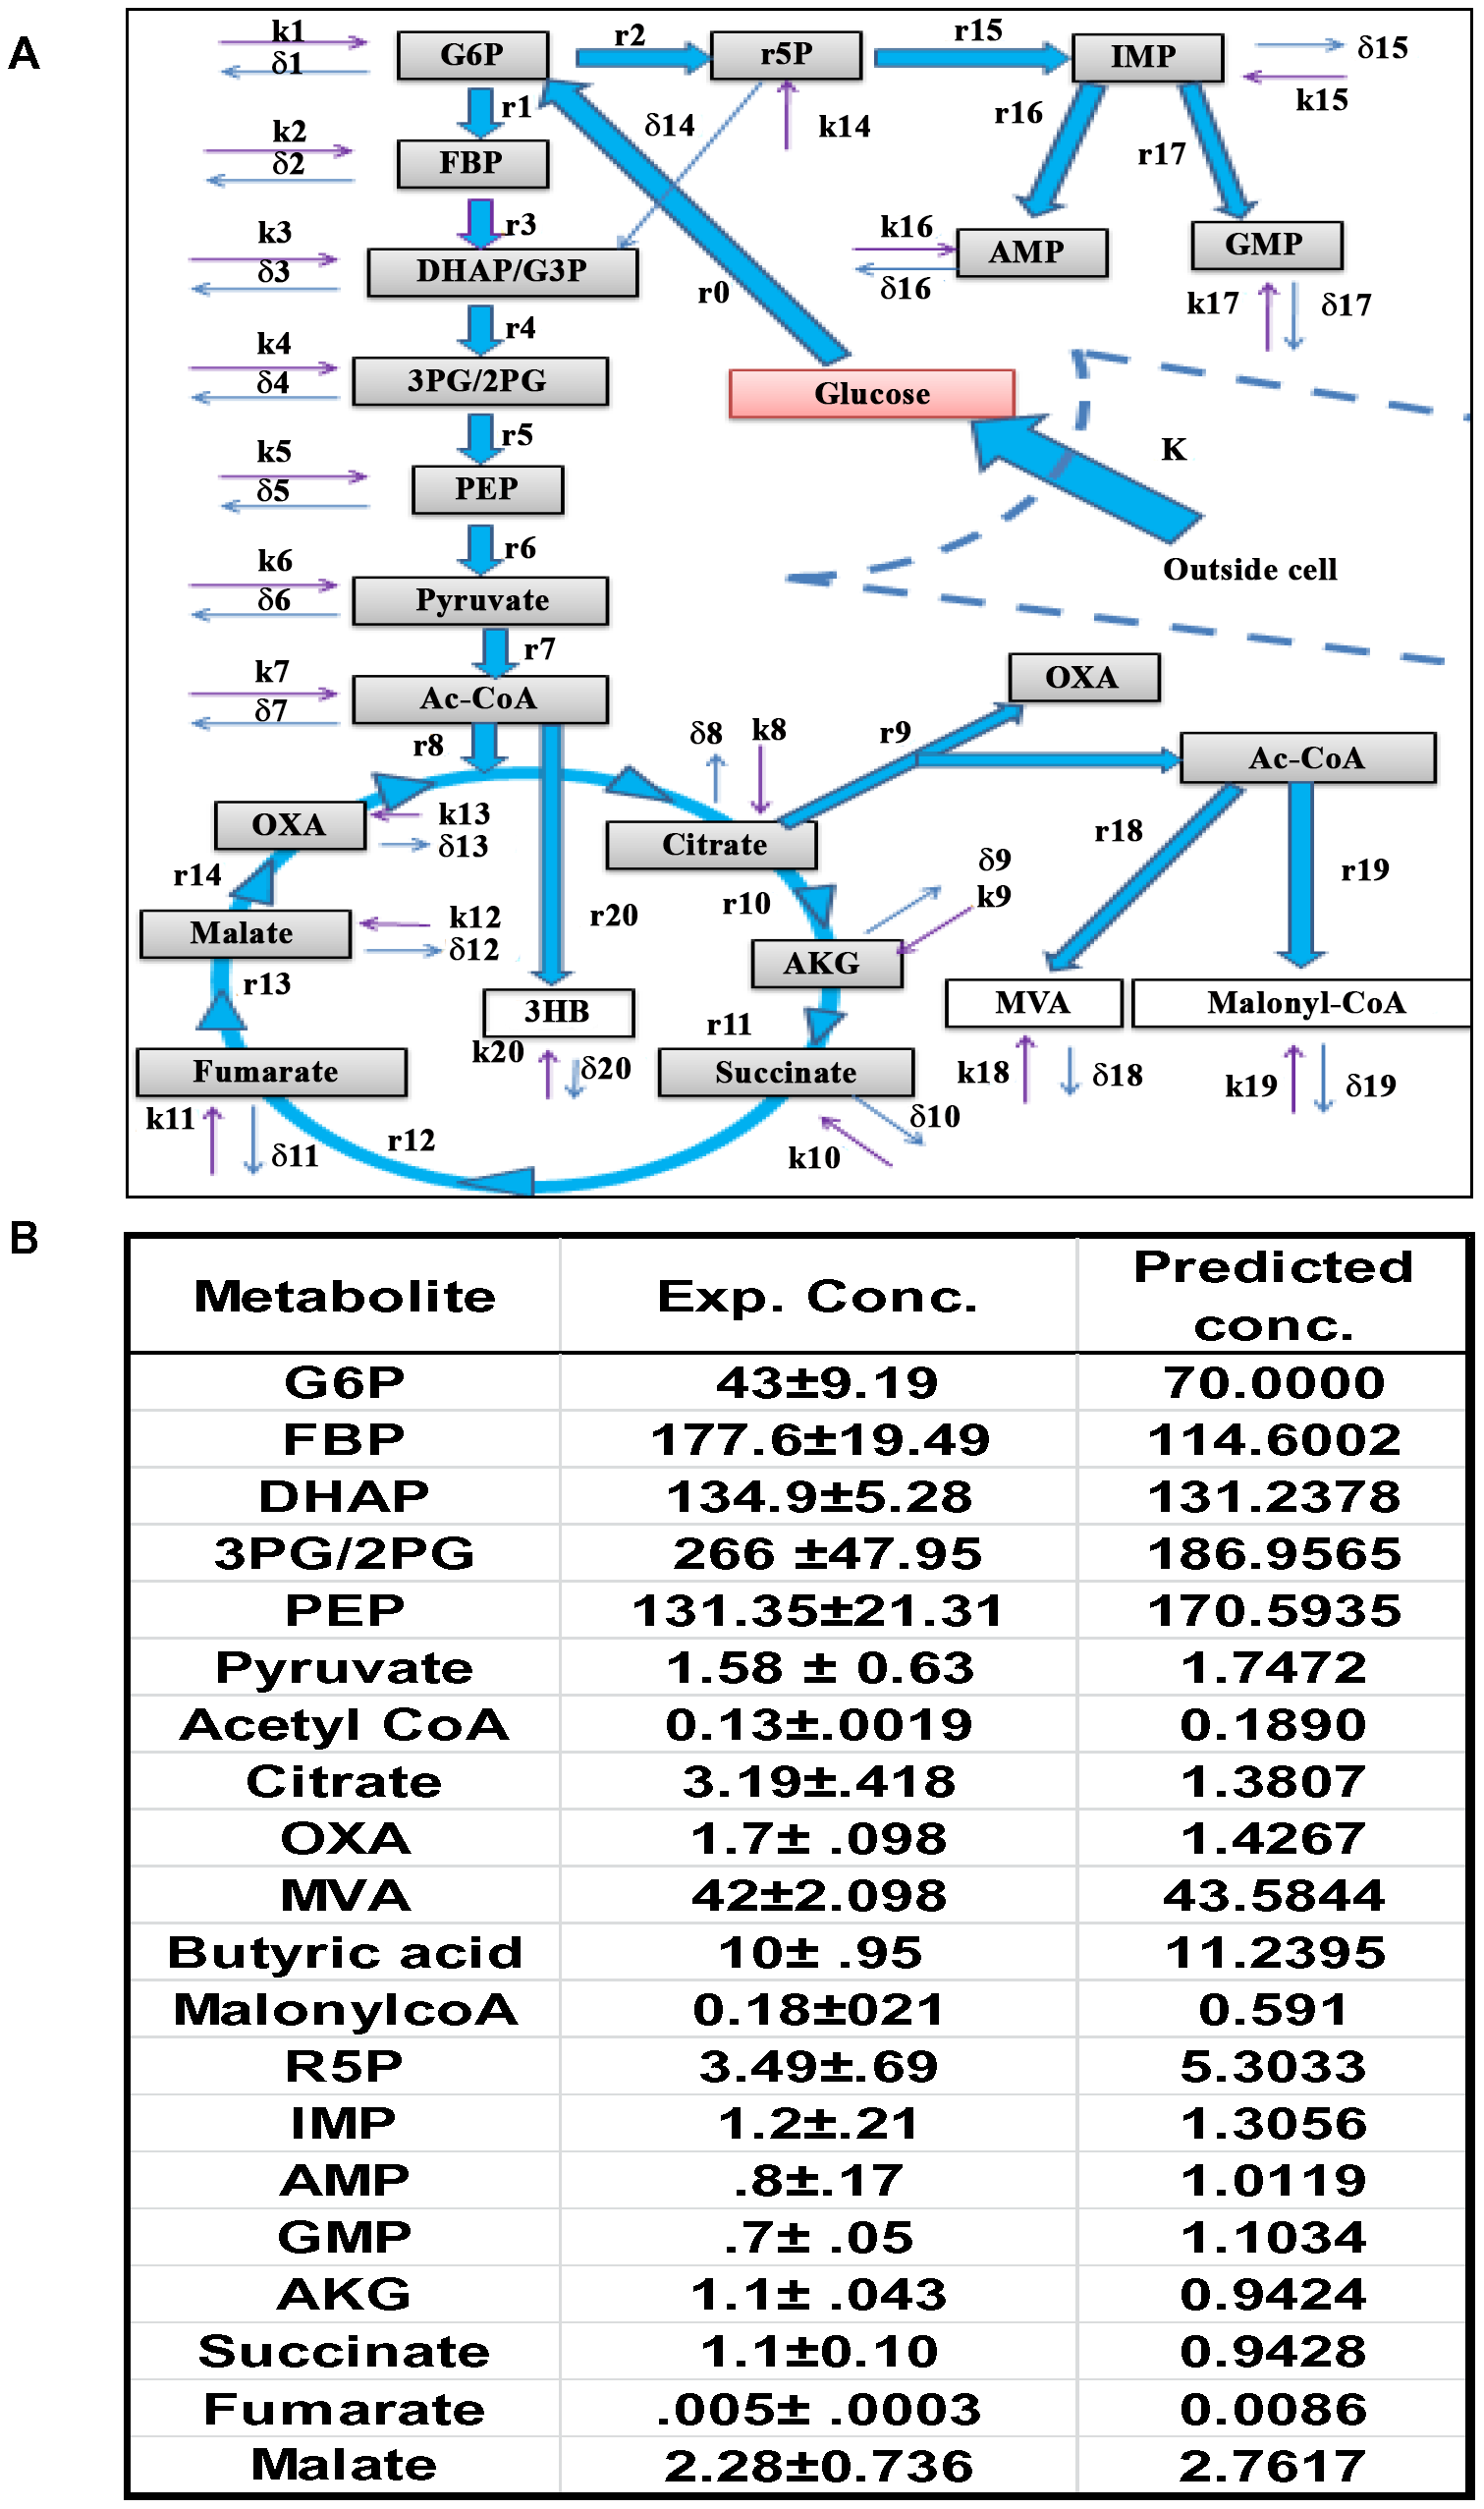 The CCM pathways captured by the ODE model.